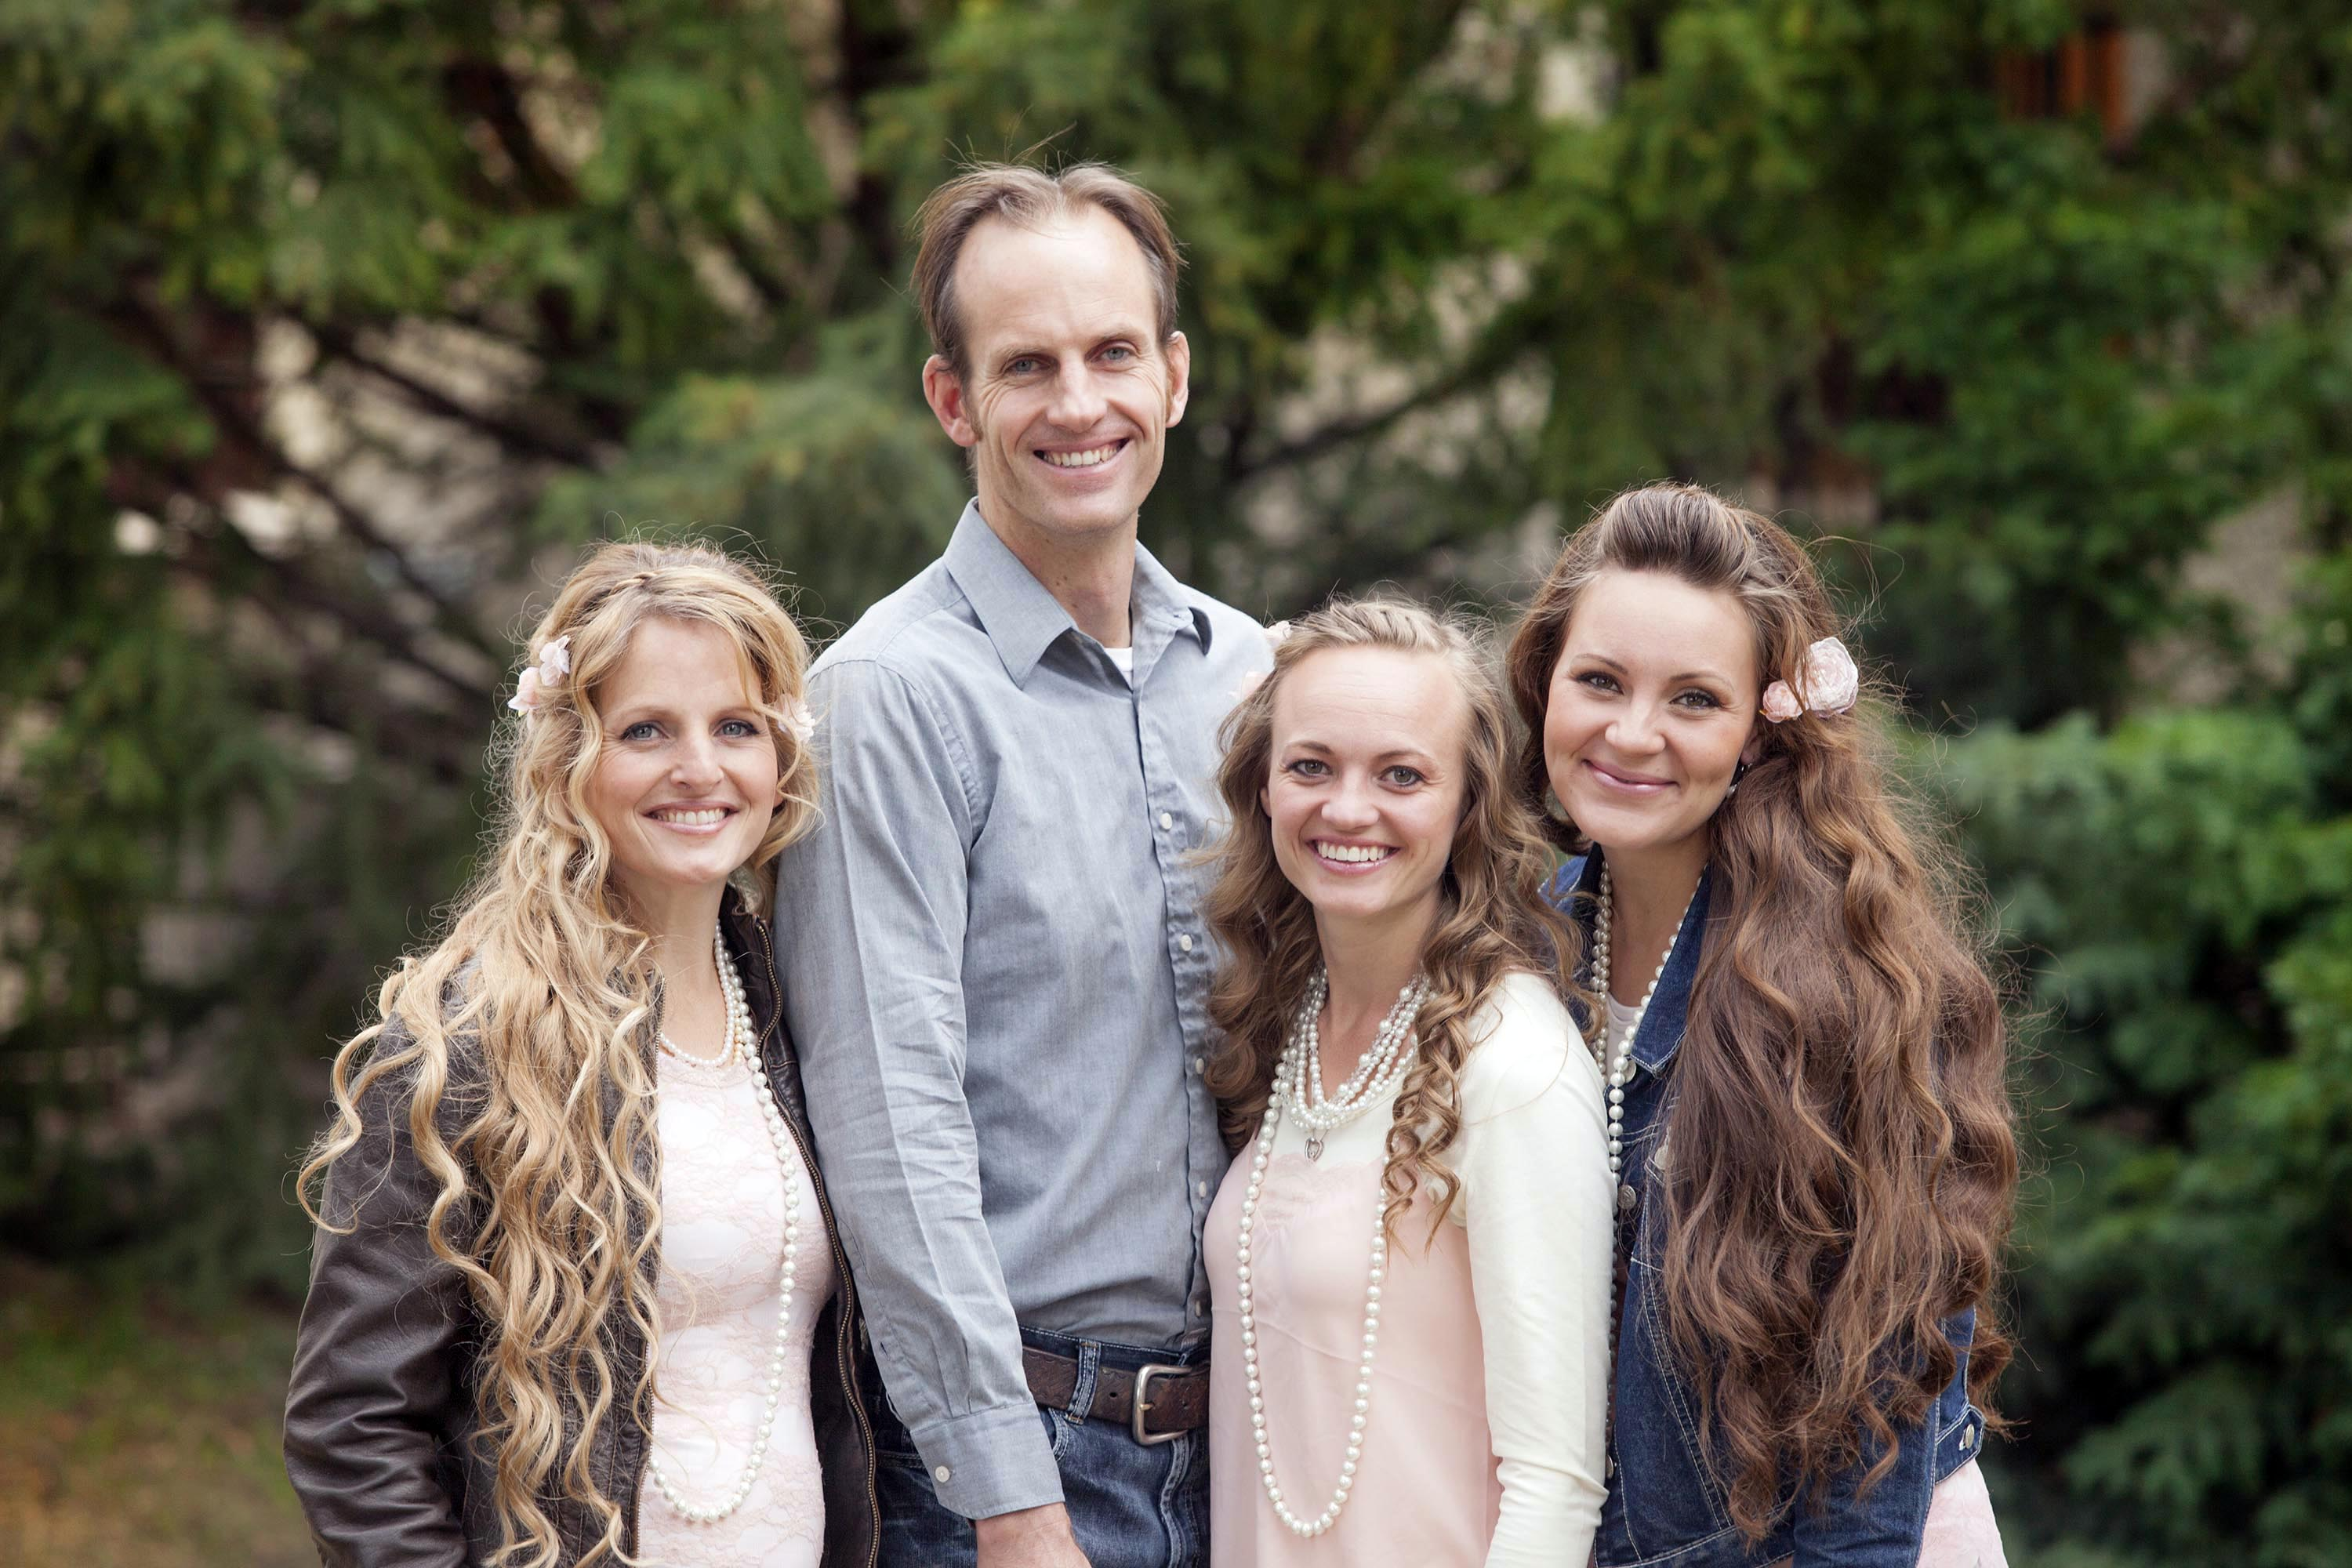 Mormon polygamy dating site